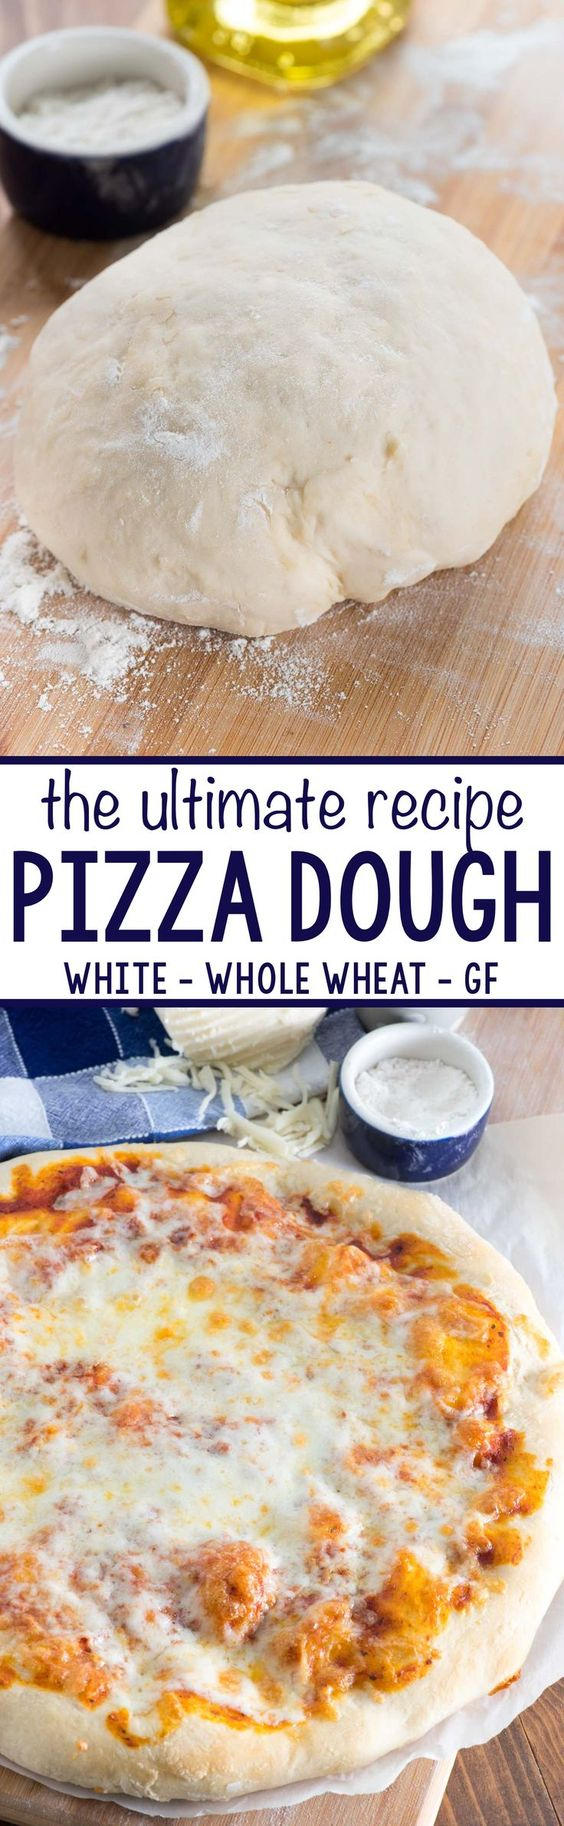 pizza dough makes the BEST soft pizza crust. Make white, whole wheat ...